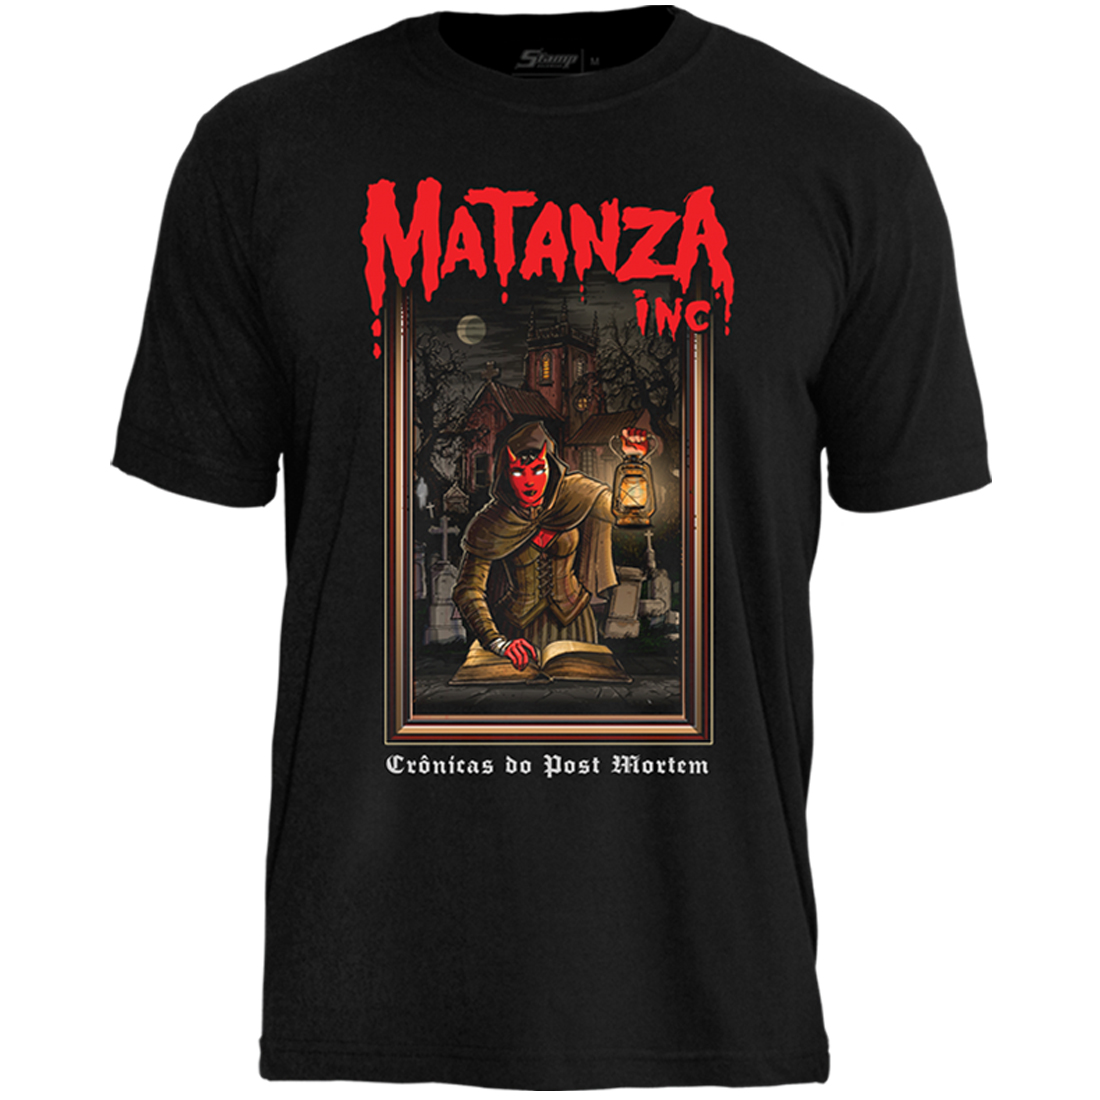 Camiseta Matanza Crônicas do Post Mortem